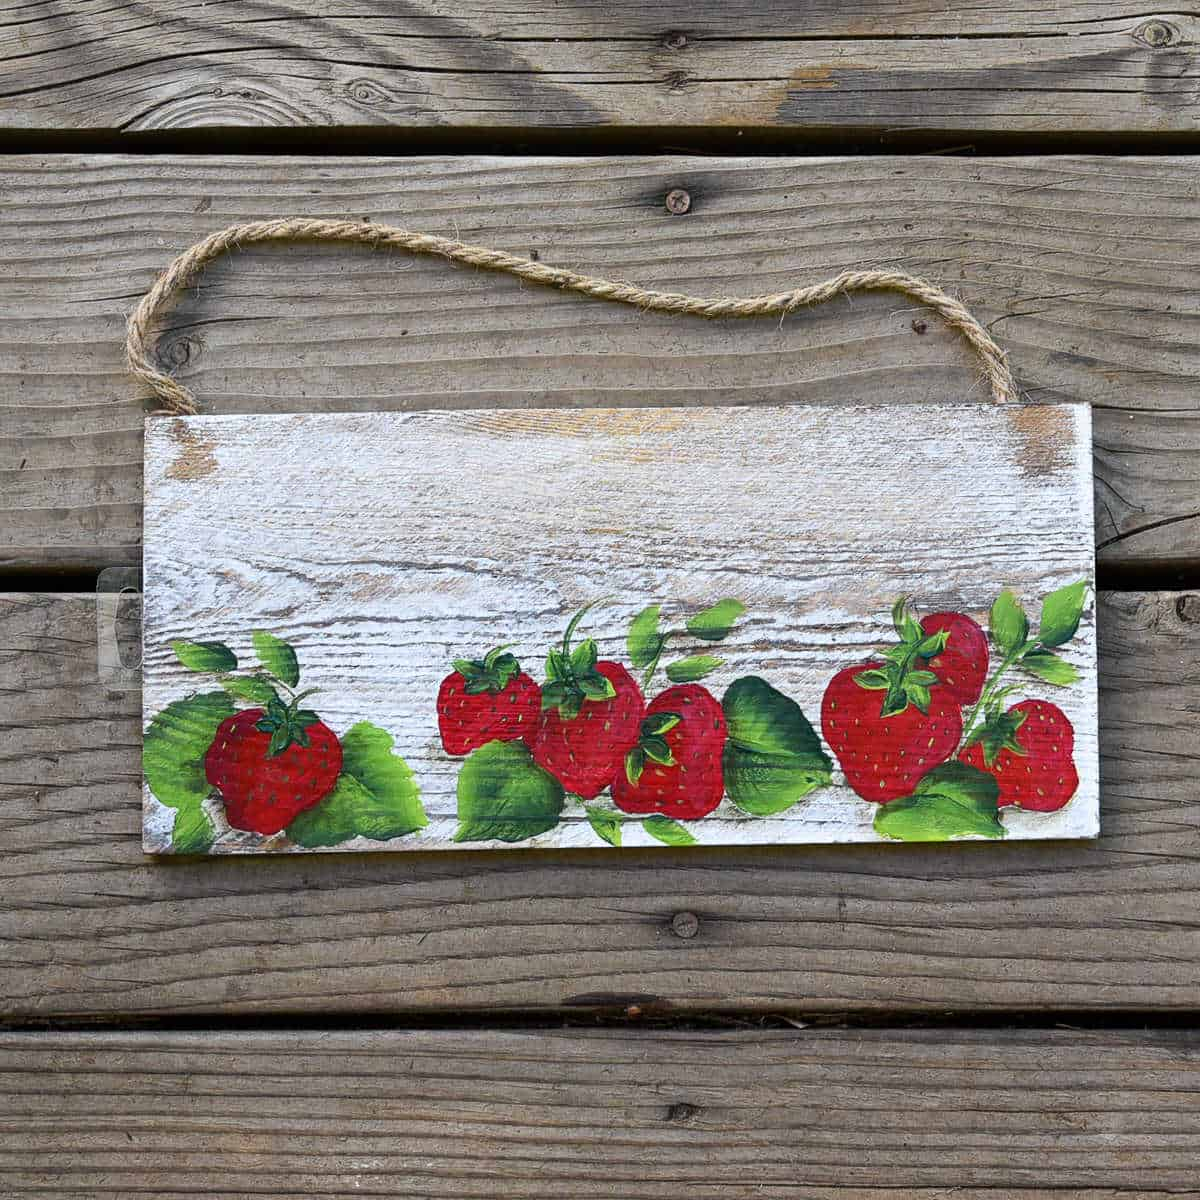 How to Paint Strawberries